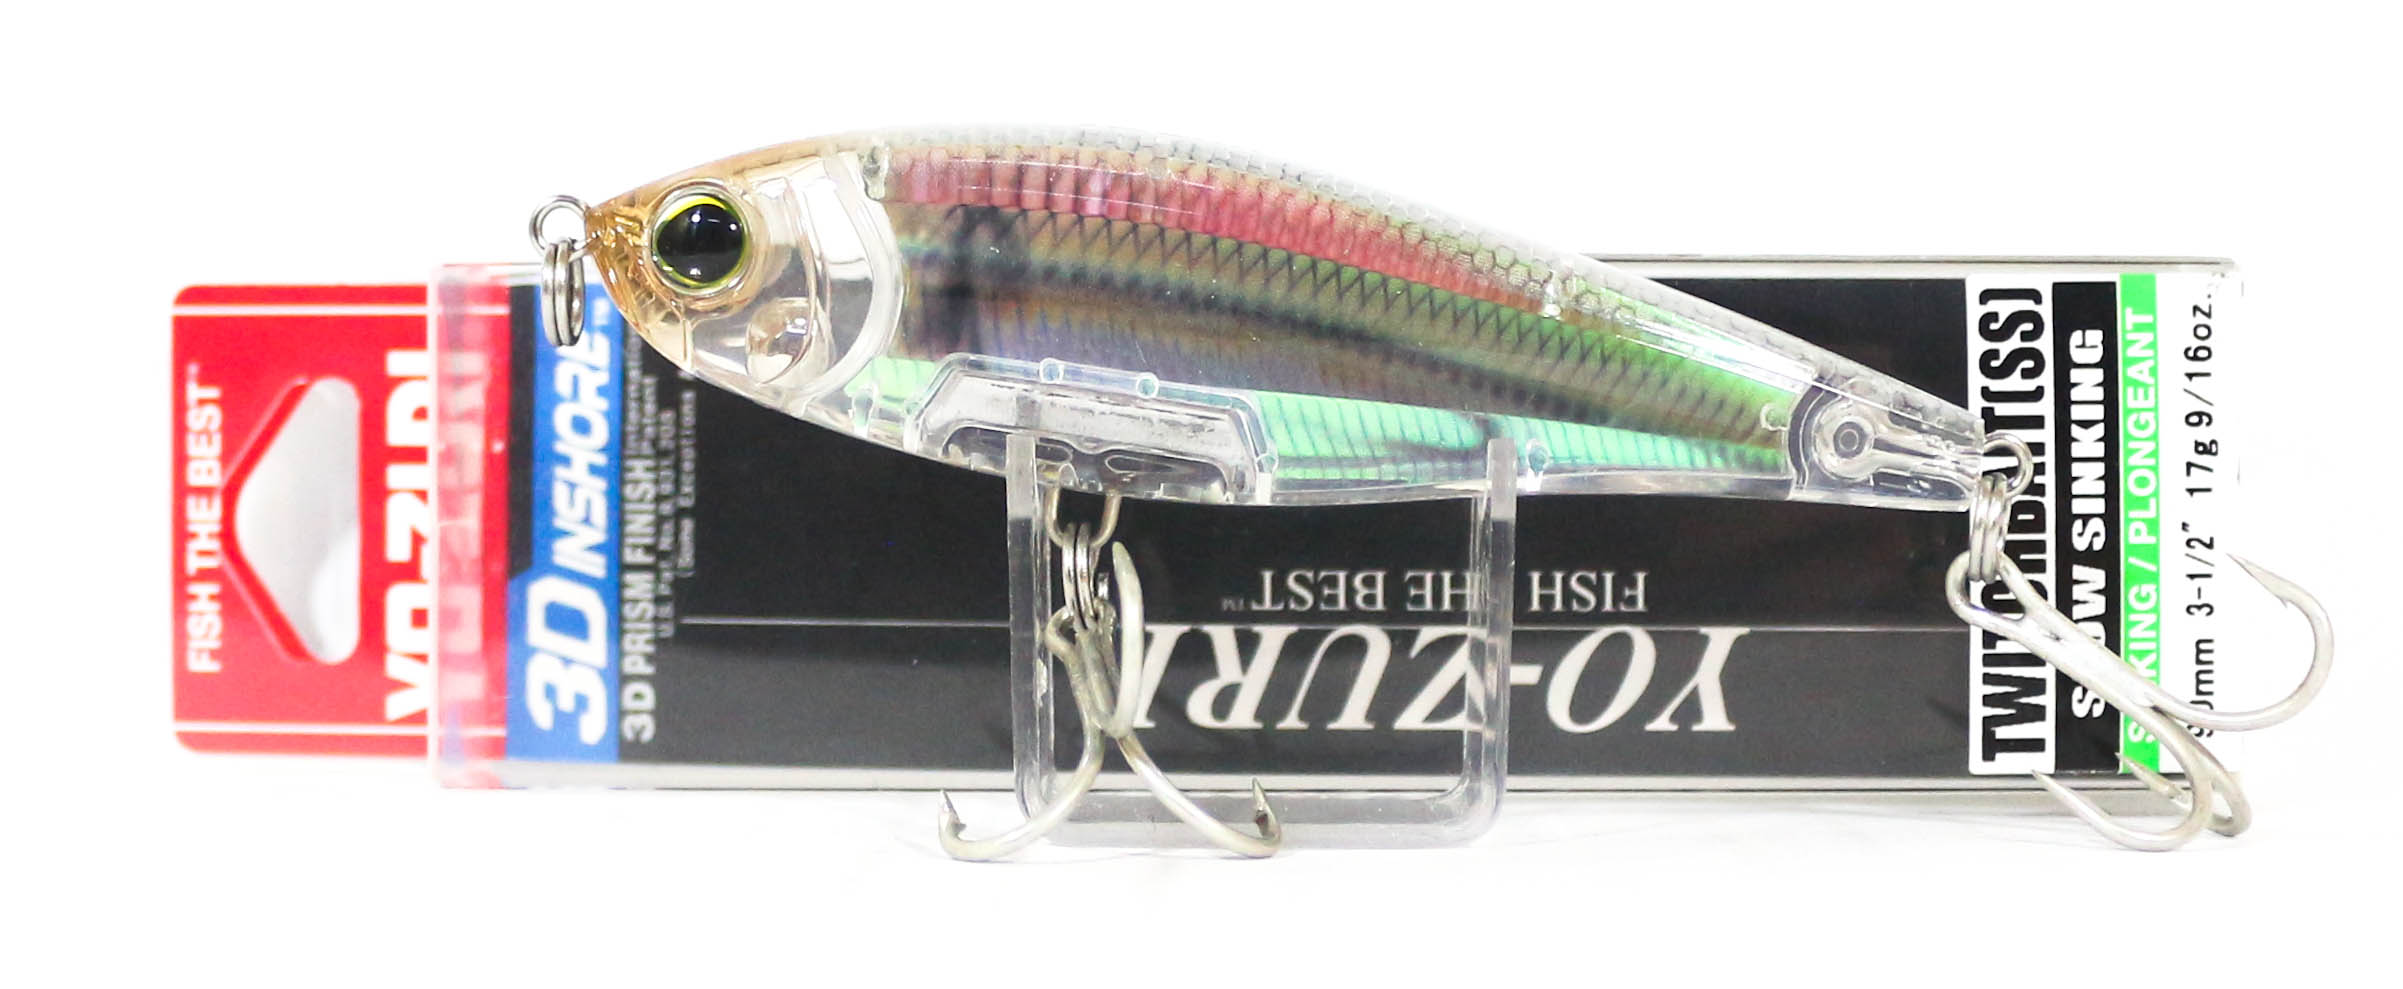 Yo Zuri Duel 3D Inshore Twitchbait 90SS Slow Sinking Lure R1208-RGLM (8321)